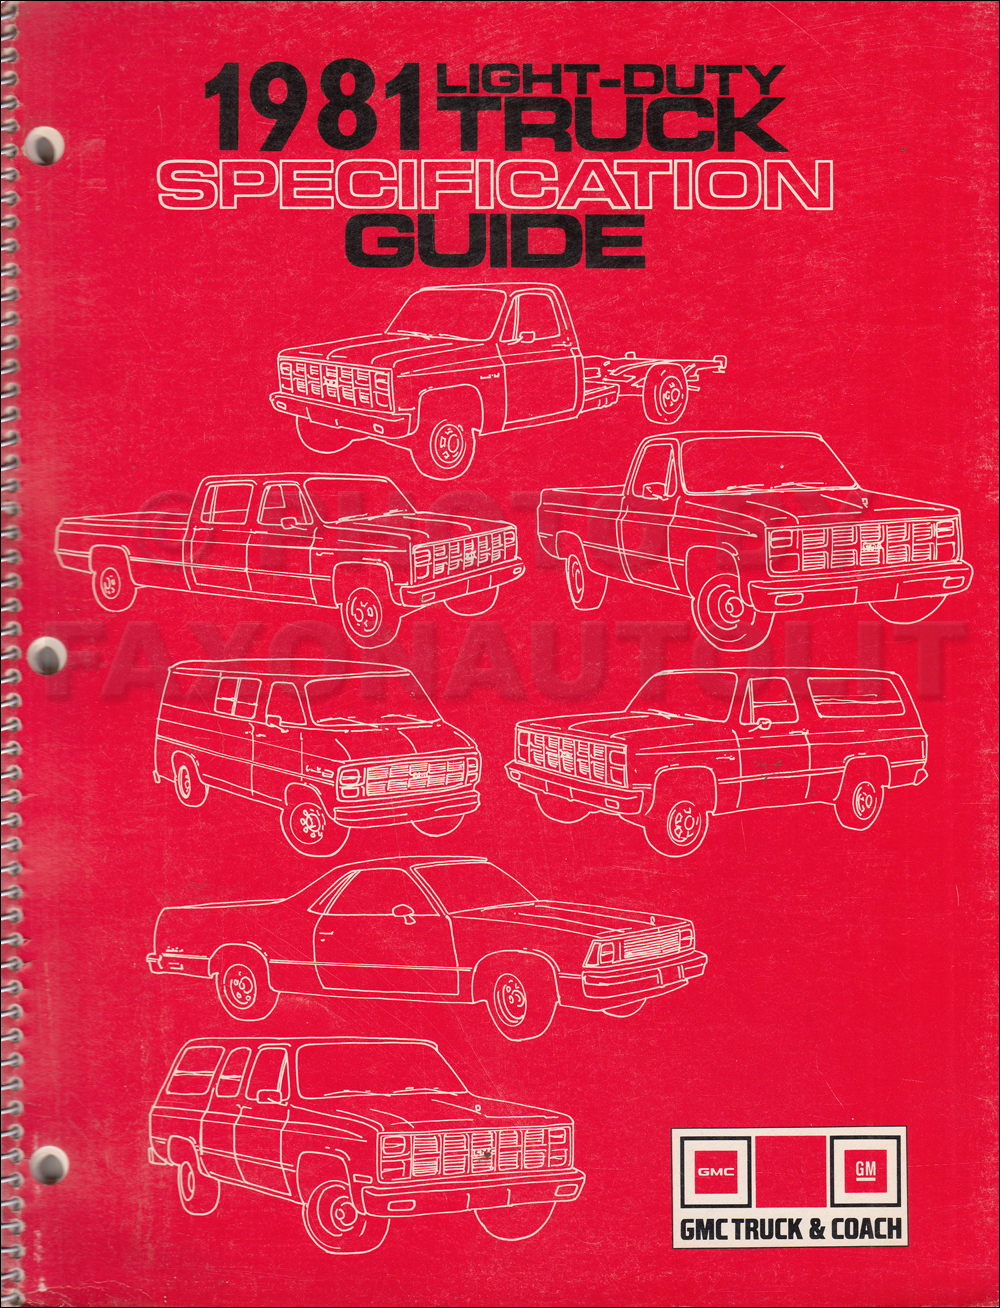 1981 gmc specifications guide competitive comparison dealer album original